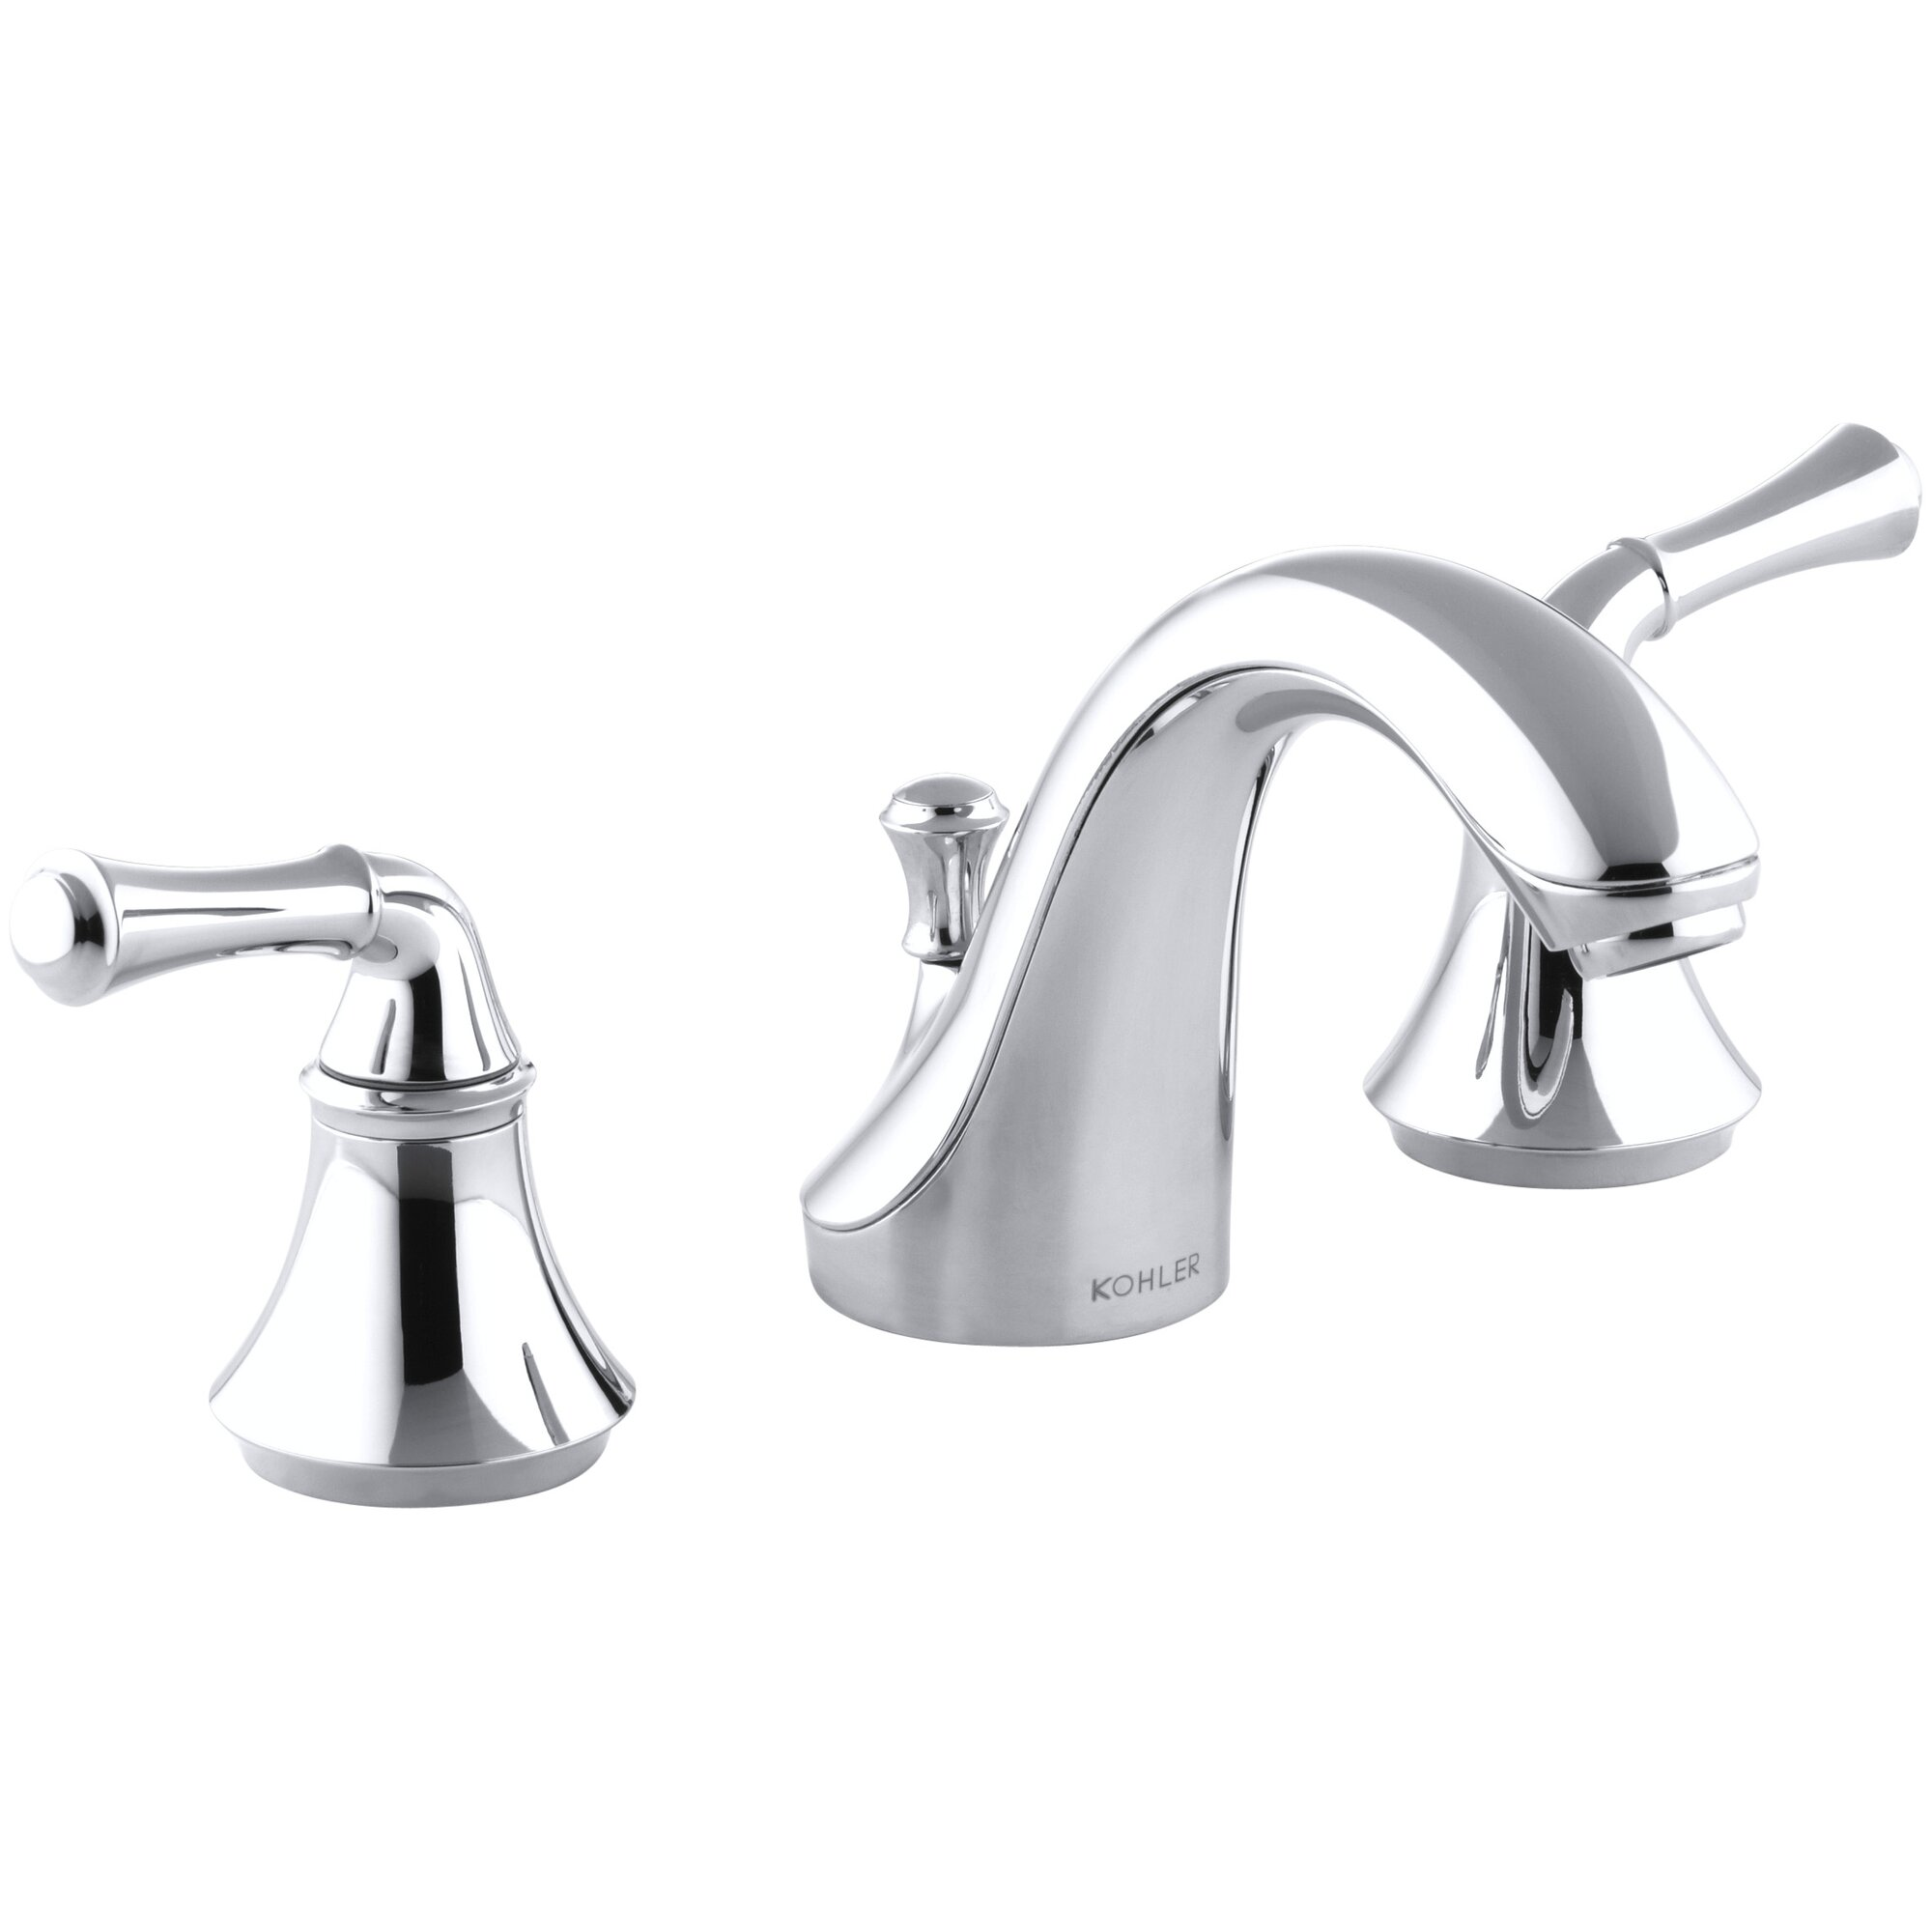 Kohler Forté Widespread Bathroom Sink Faucet with Traditional ...